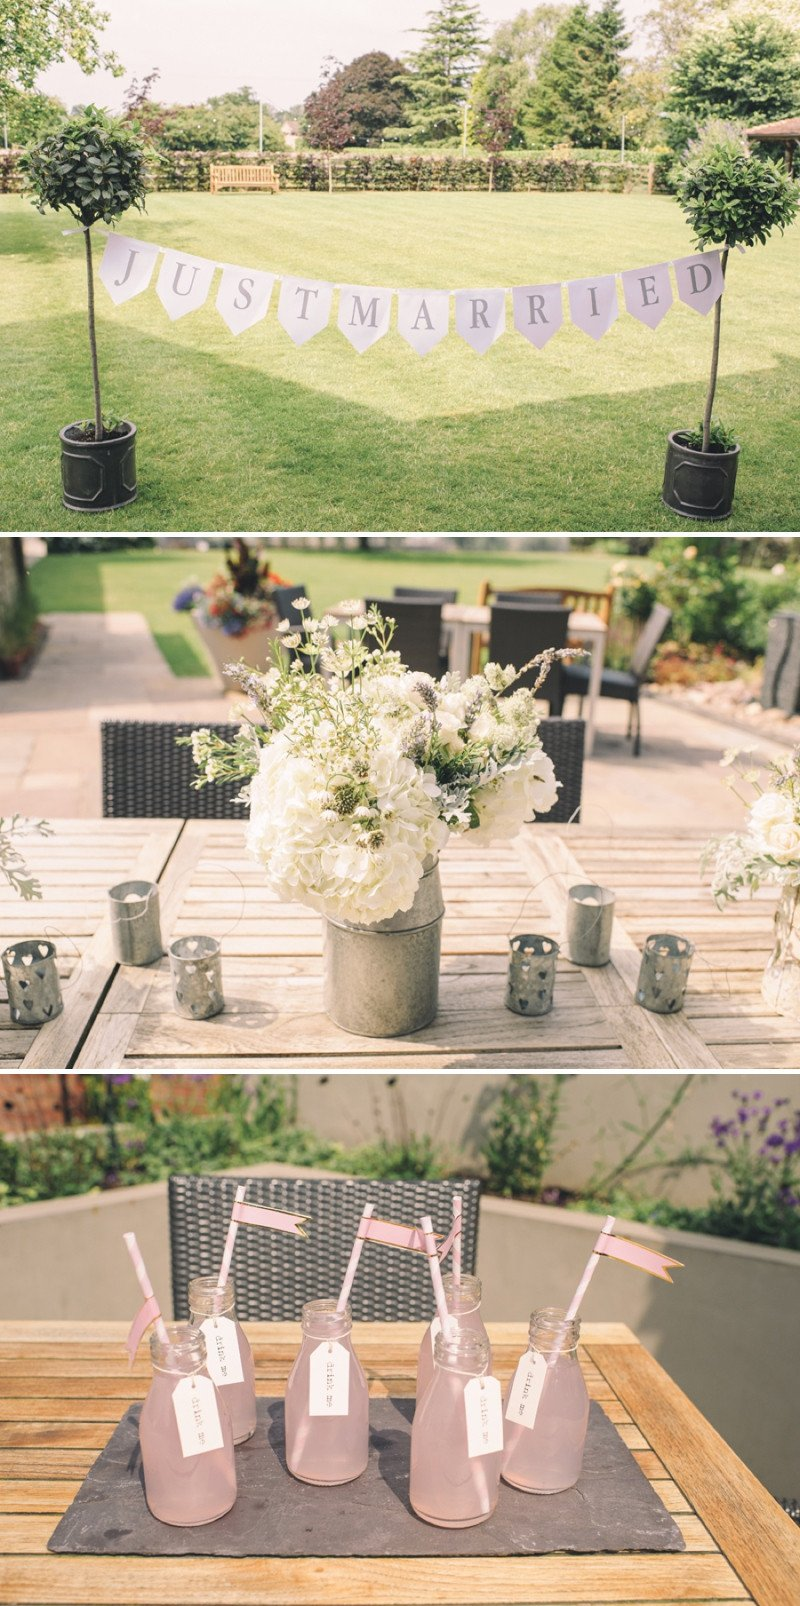 Rustic Table Decor for Weddings Elegant the Wedding My Dreams Rustic and Vintage Wedding Decorations to